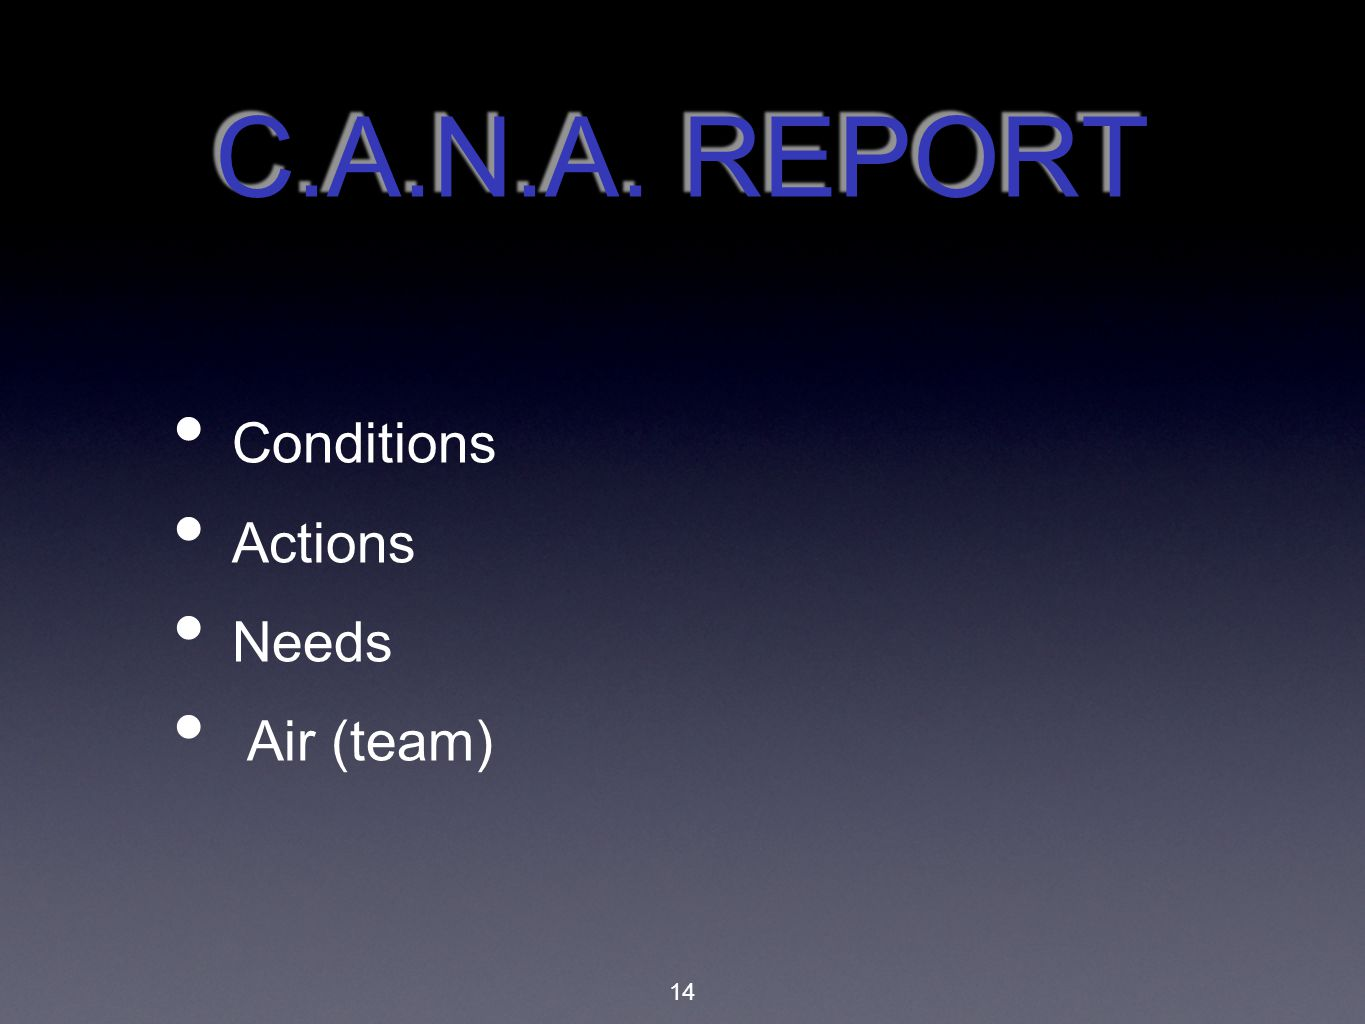 C.A.N.A. REPORT Conditions Actions Needs Air (team)